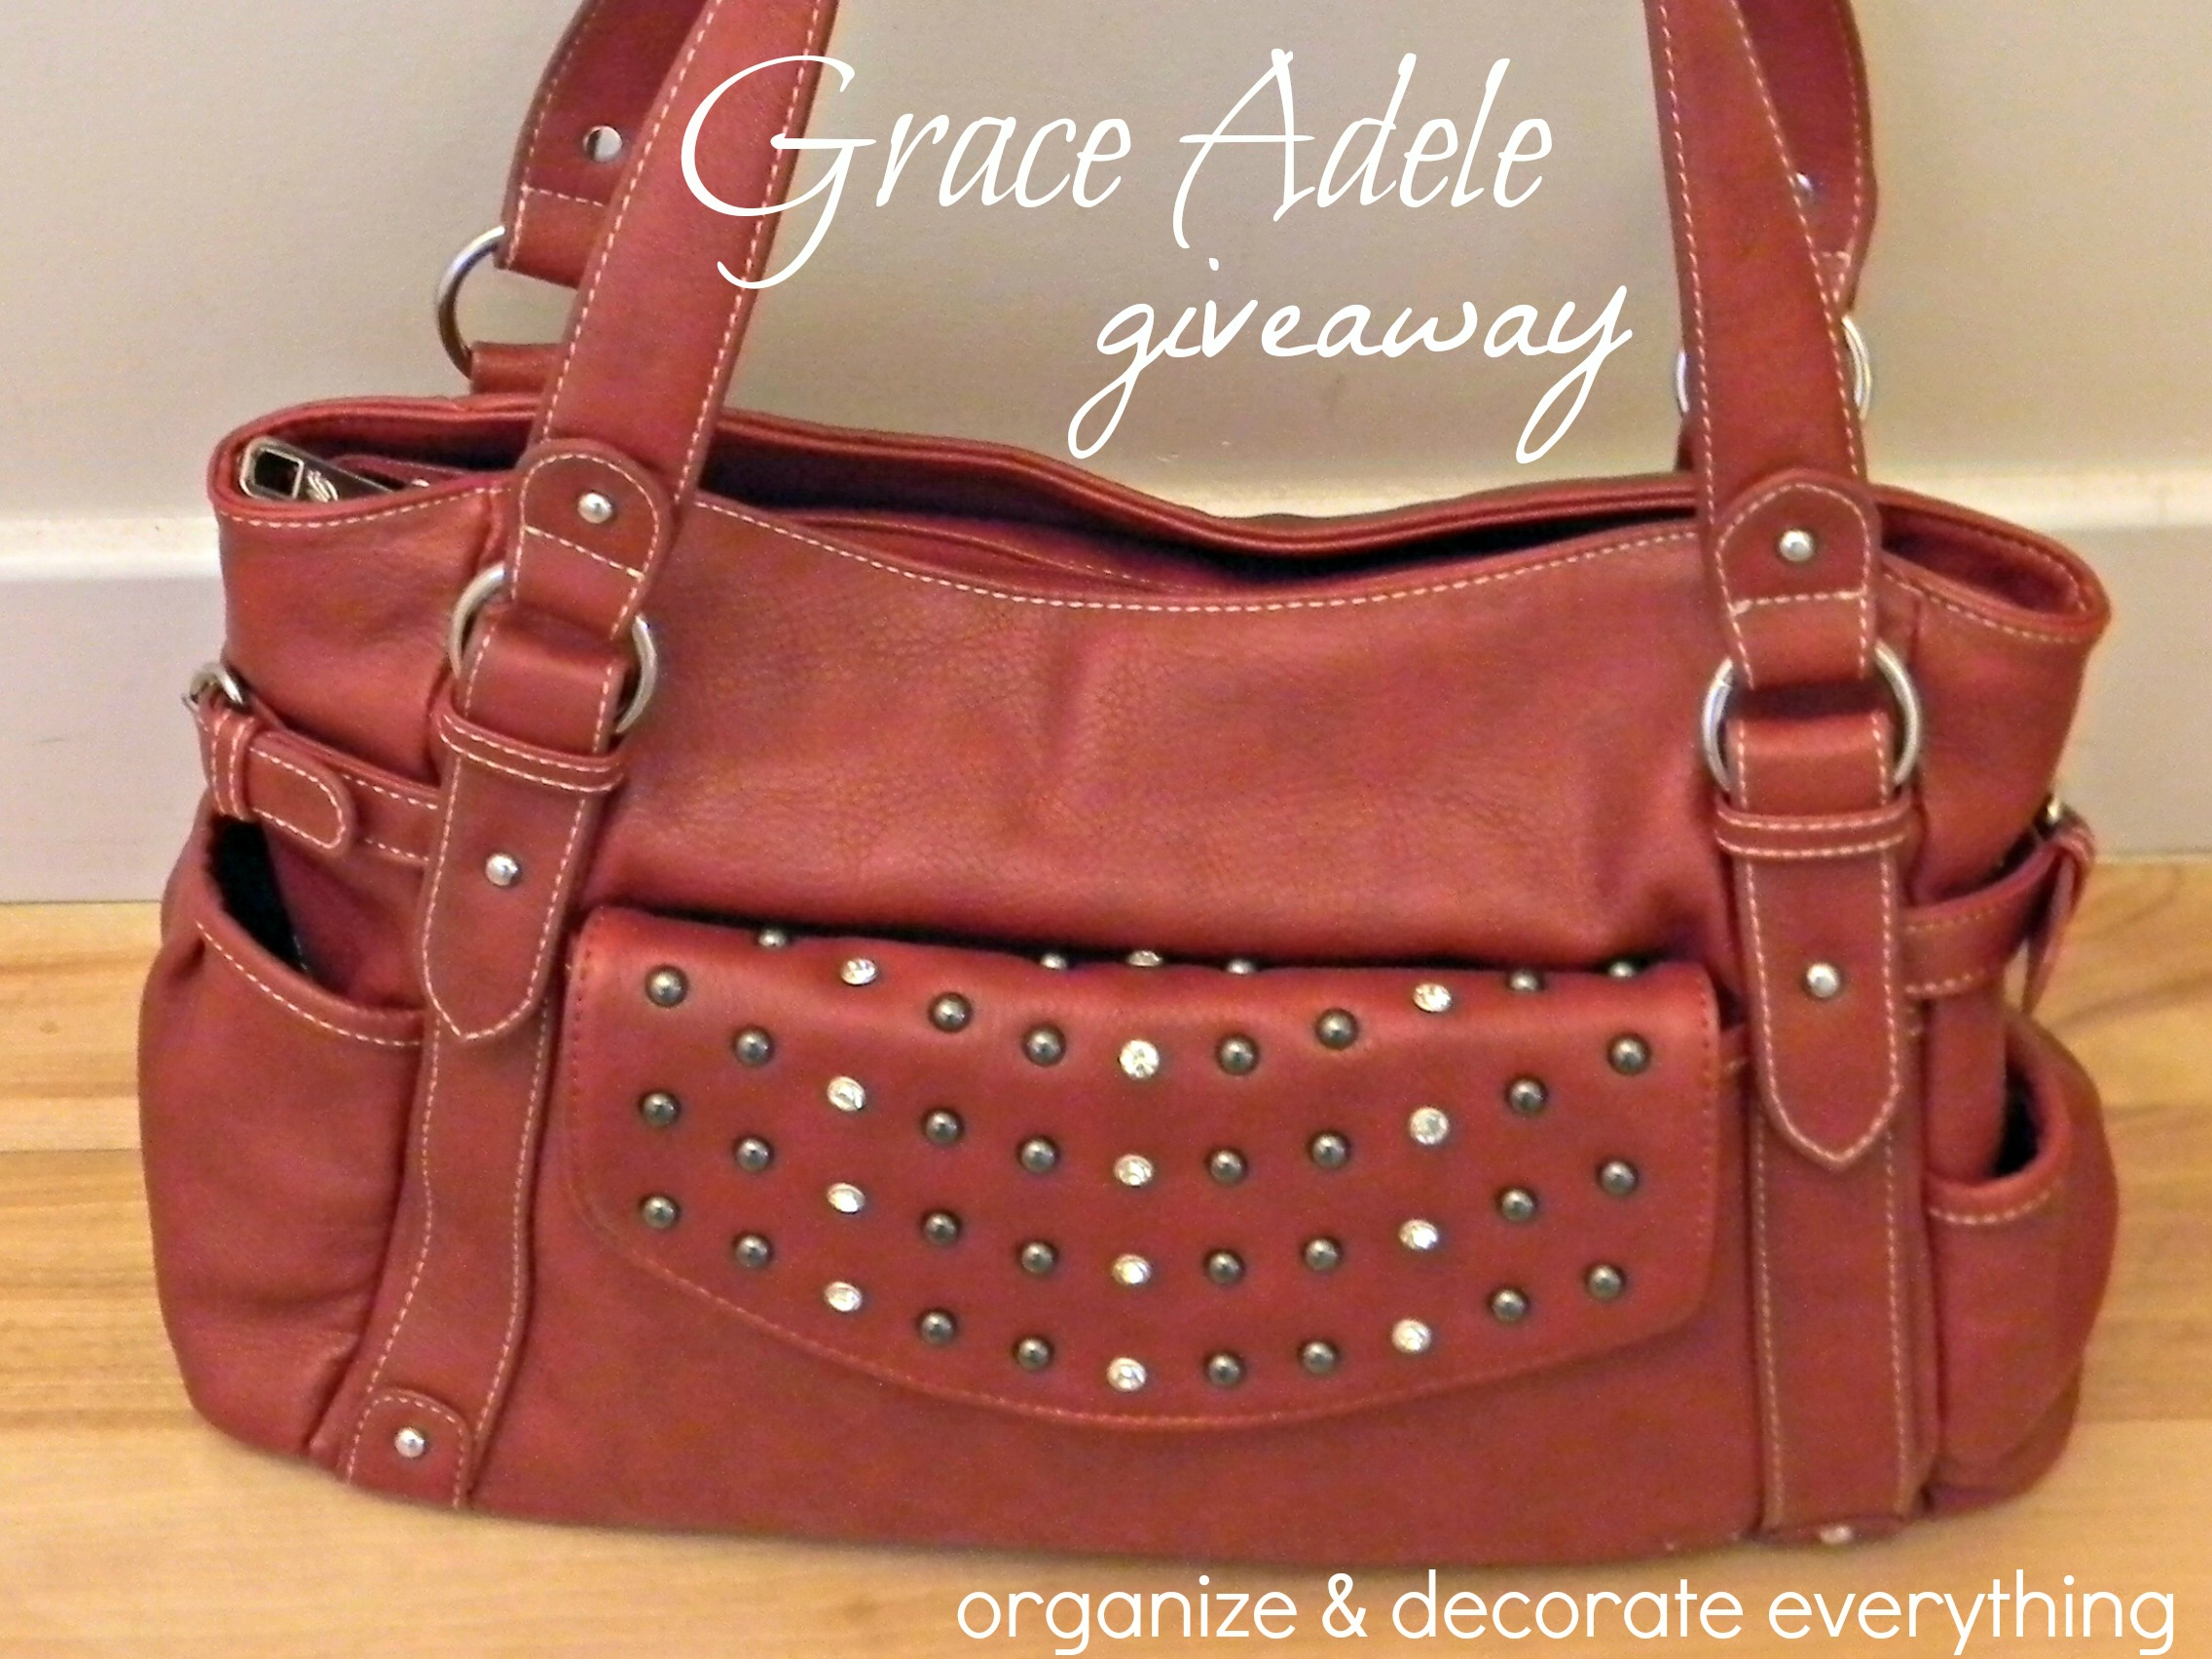 adele sweepstakes grace adele giveaway organize and decorate everything 8690